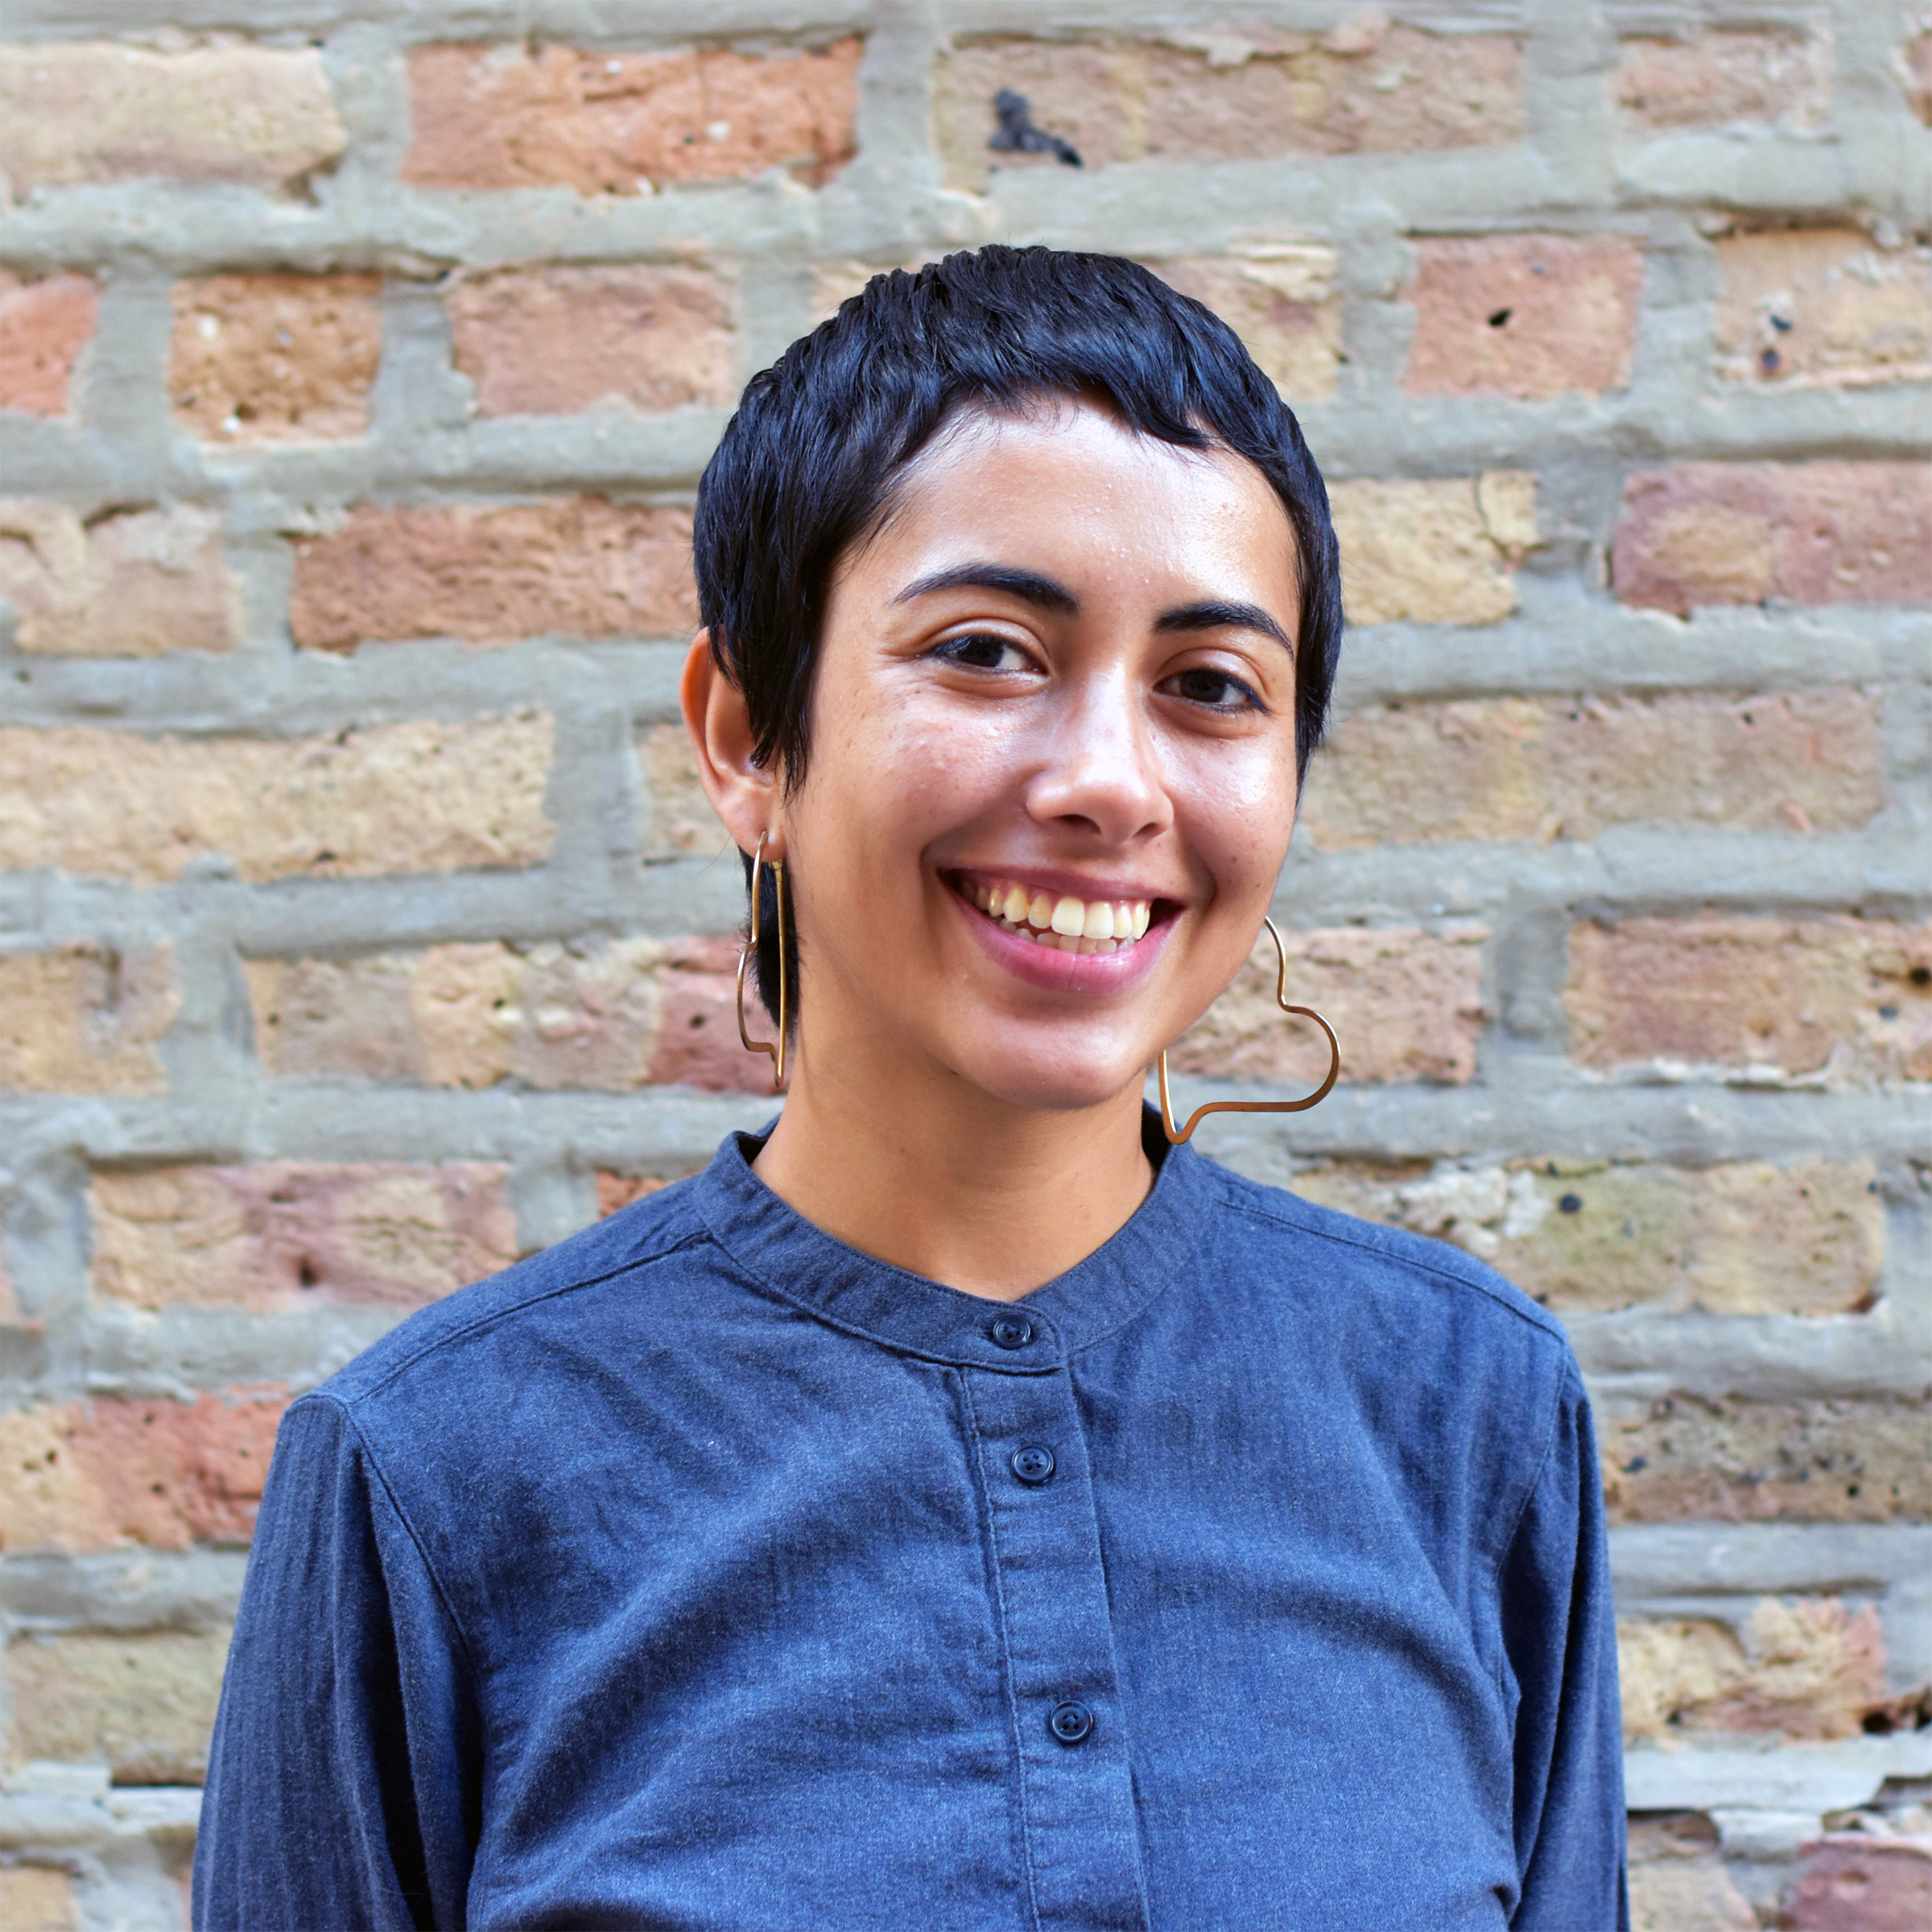 Portrait of Nohemi, smiling in front of a brick wall